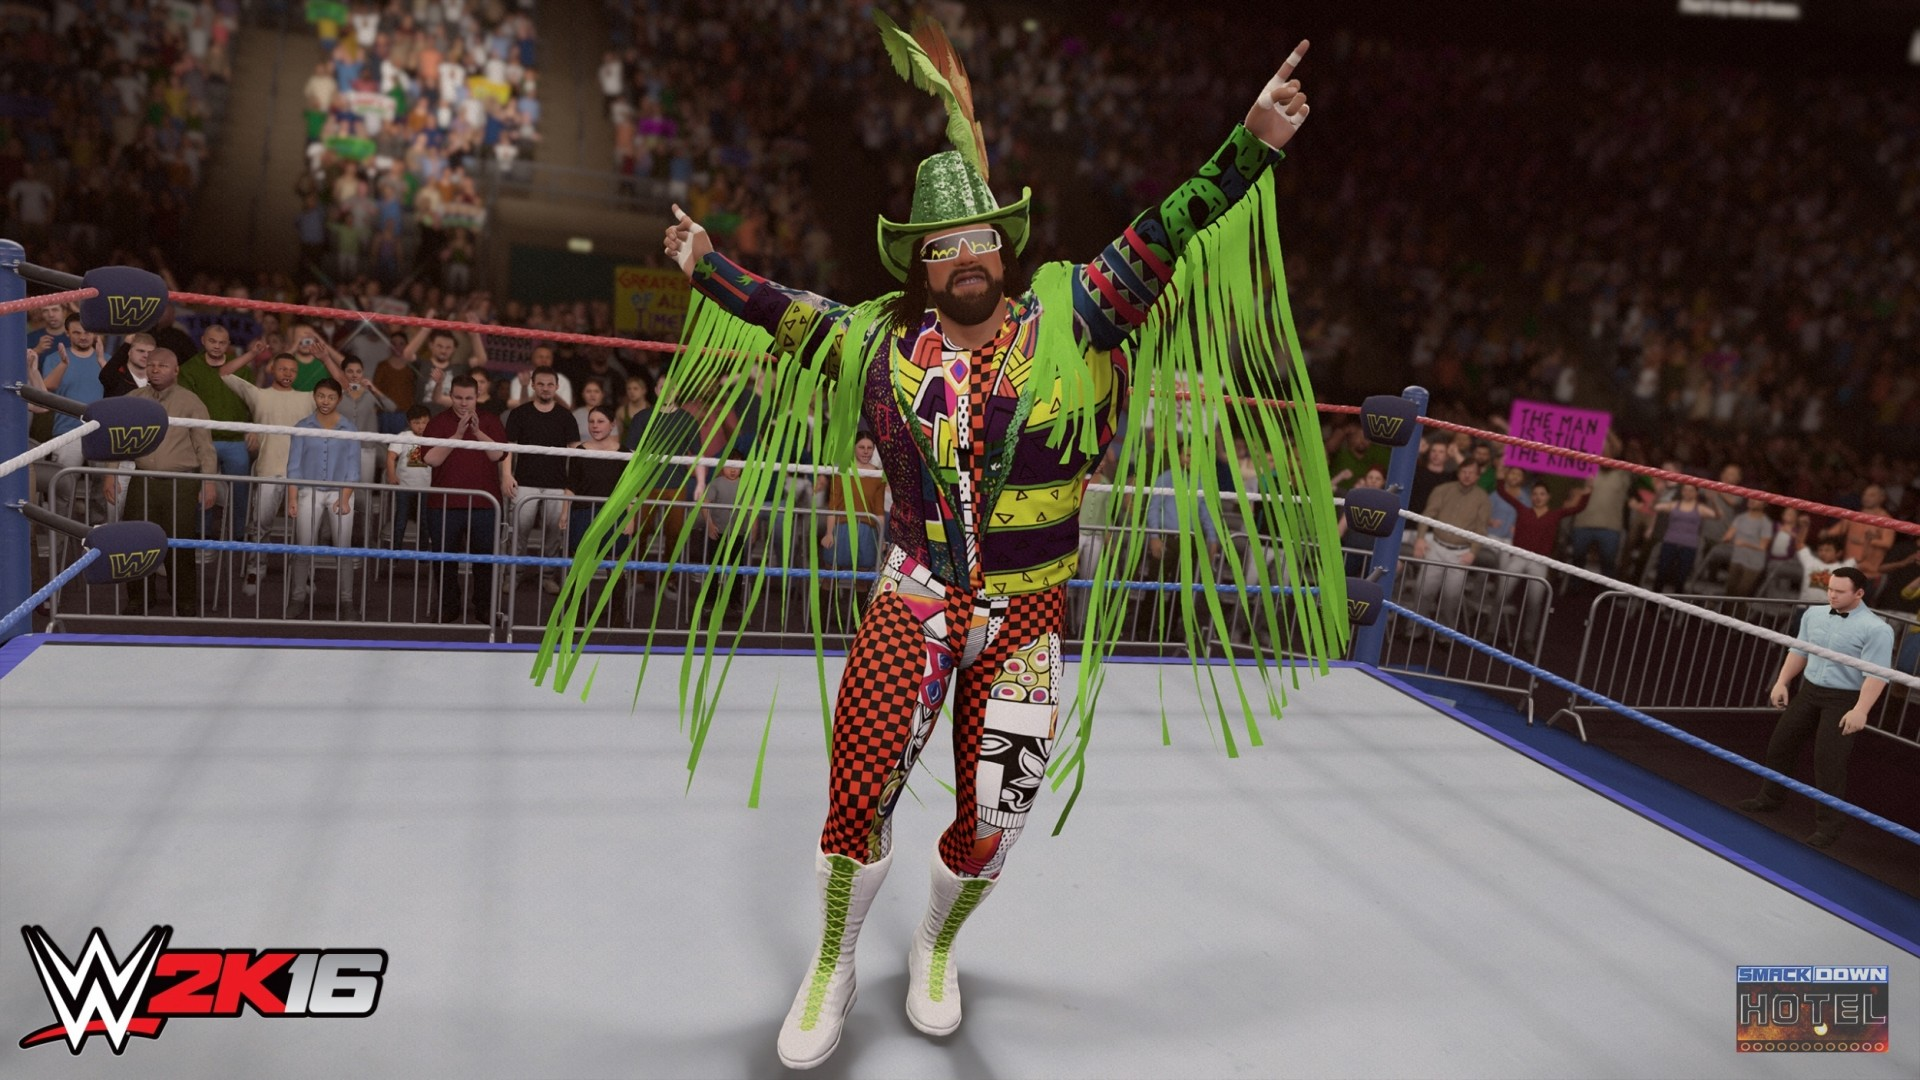 1920x1080 WWE2K16 Randy Savage Jake Roberts WWE2K16 Randy Savage 1